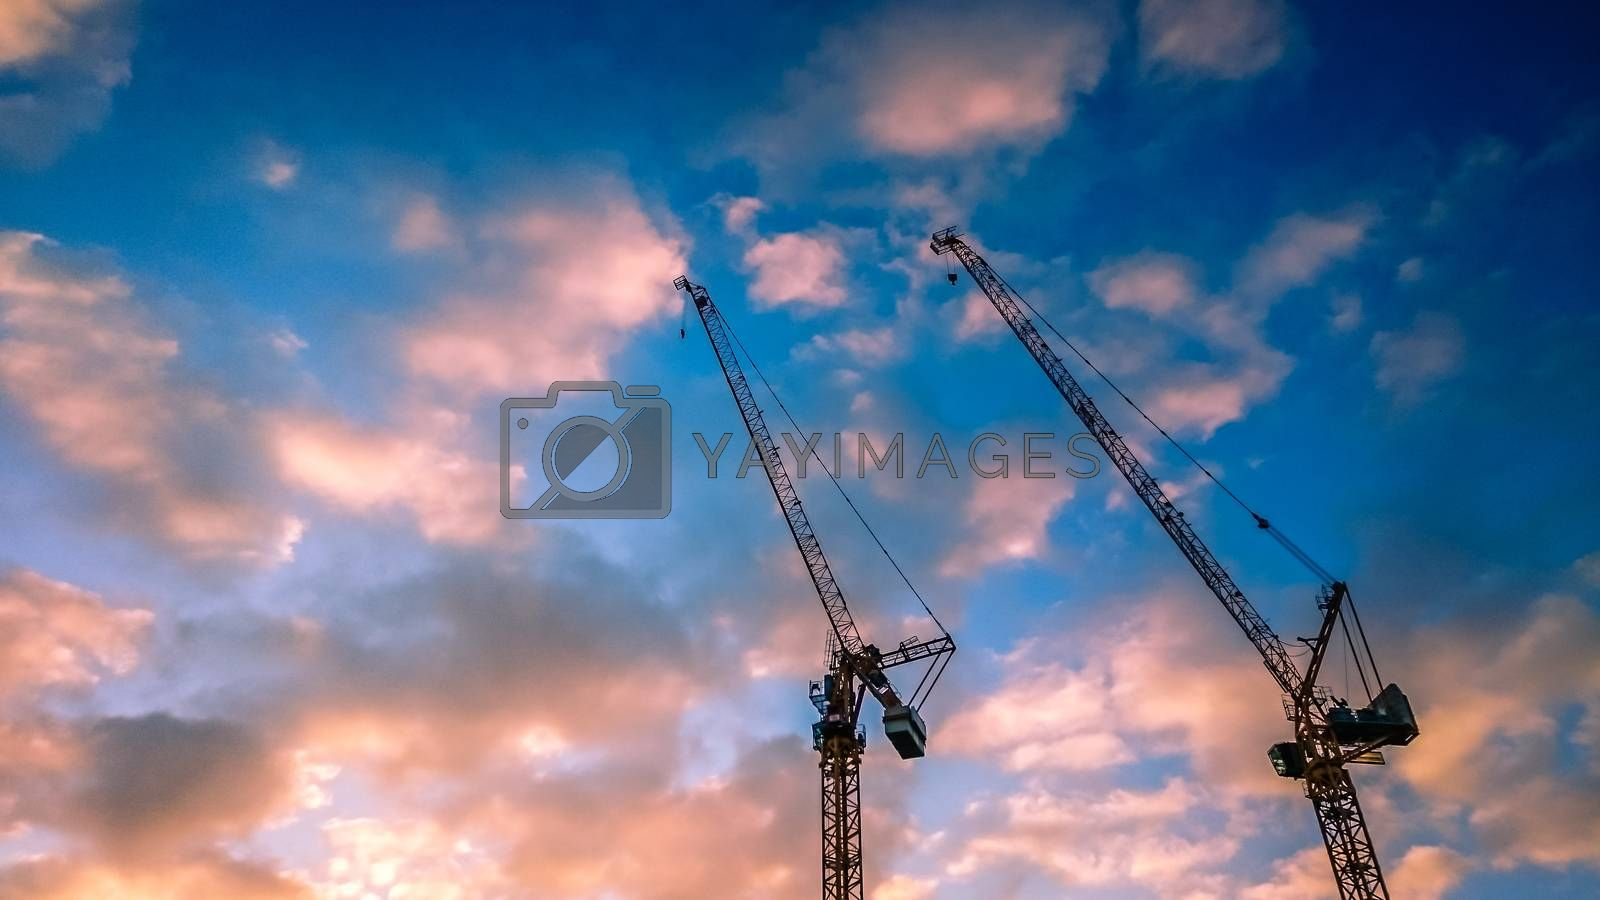 Two cranes working on one of many central London building sites